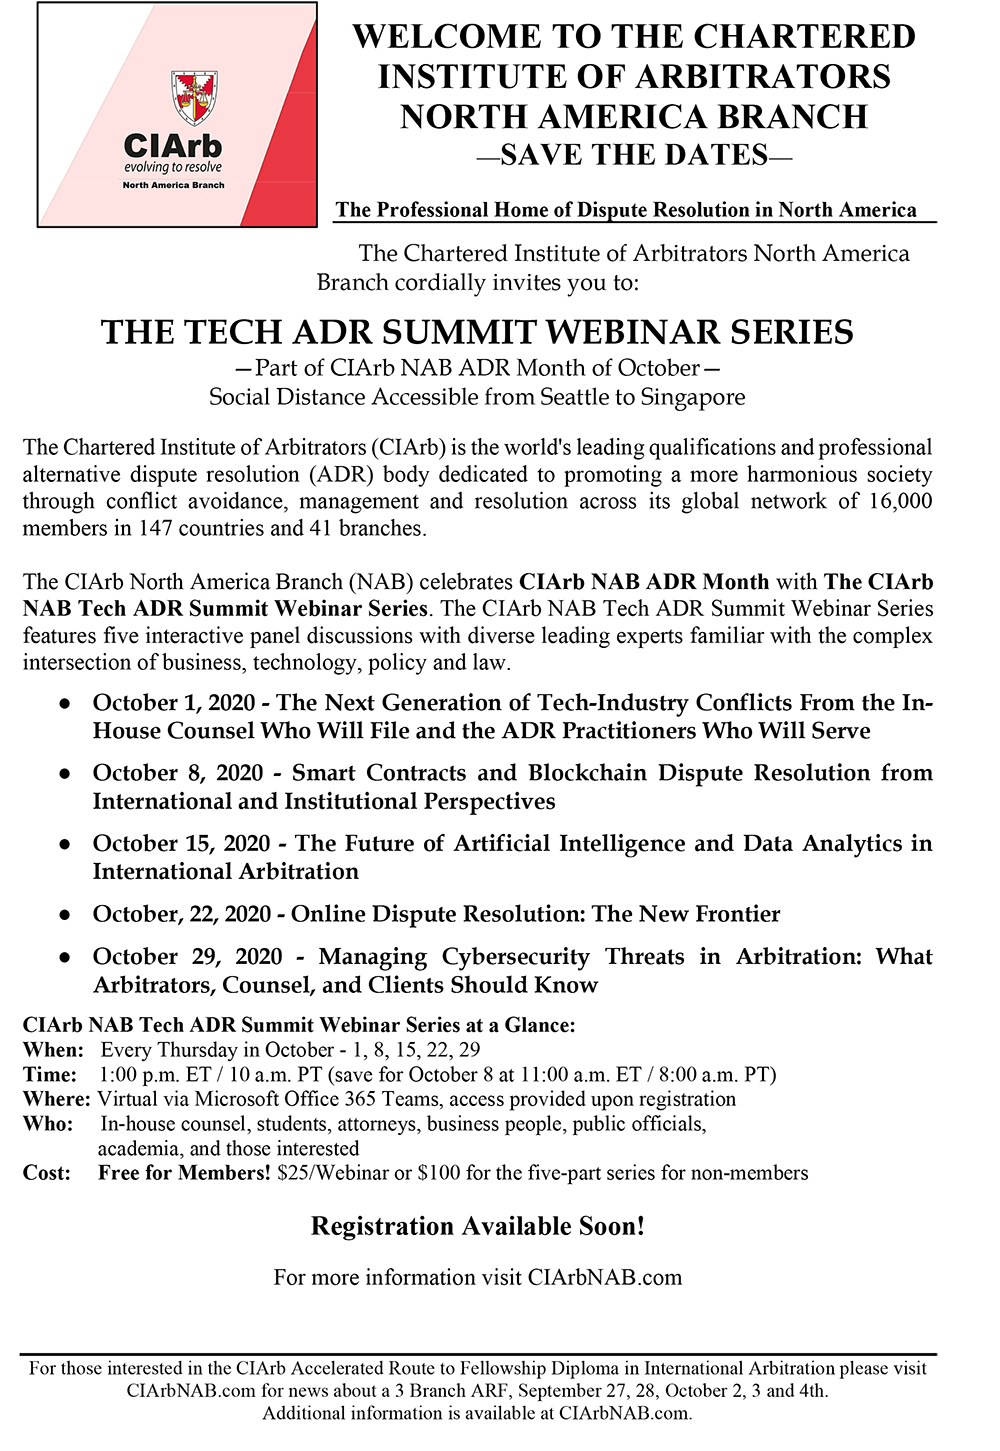 CIArb-NAB-Tech-ADR-Summit-Webinar-Series-Invitation-Revised